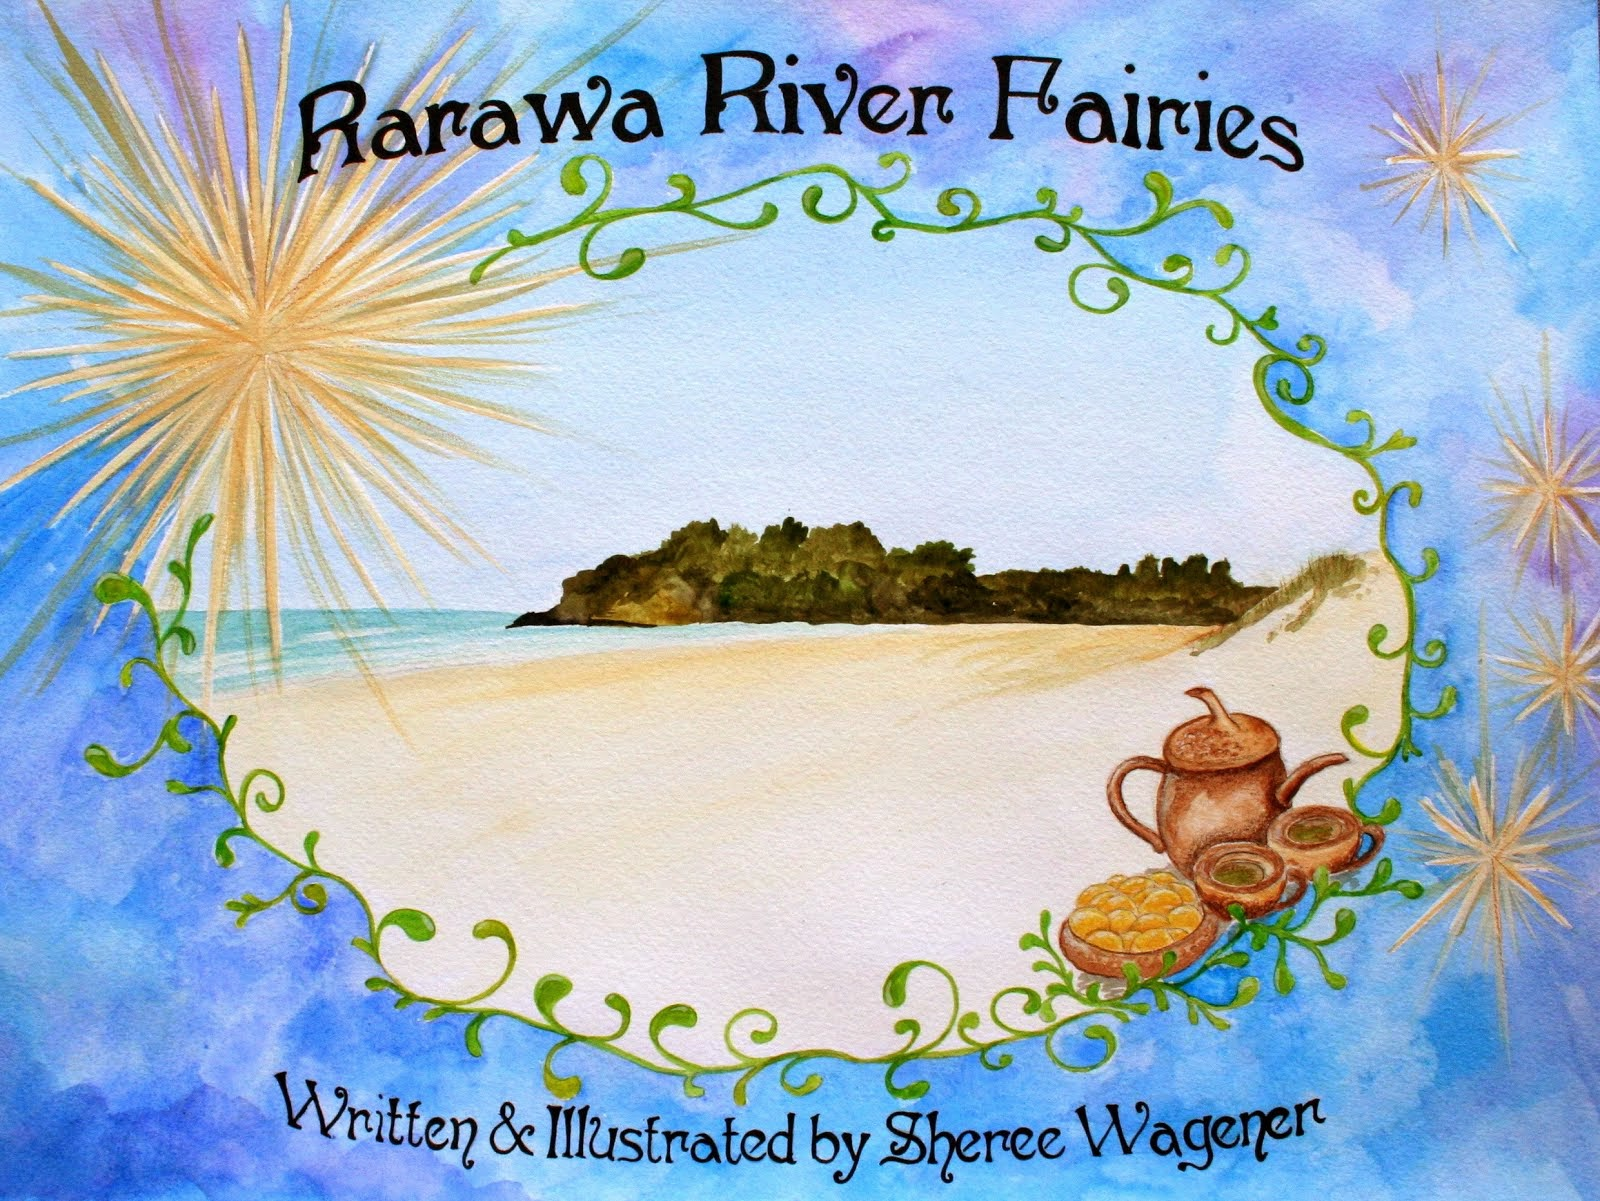 Rarawa River Fairies